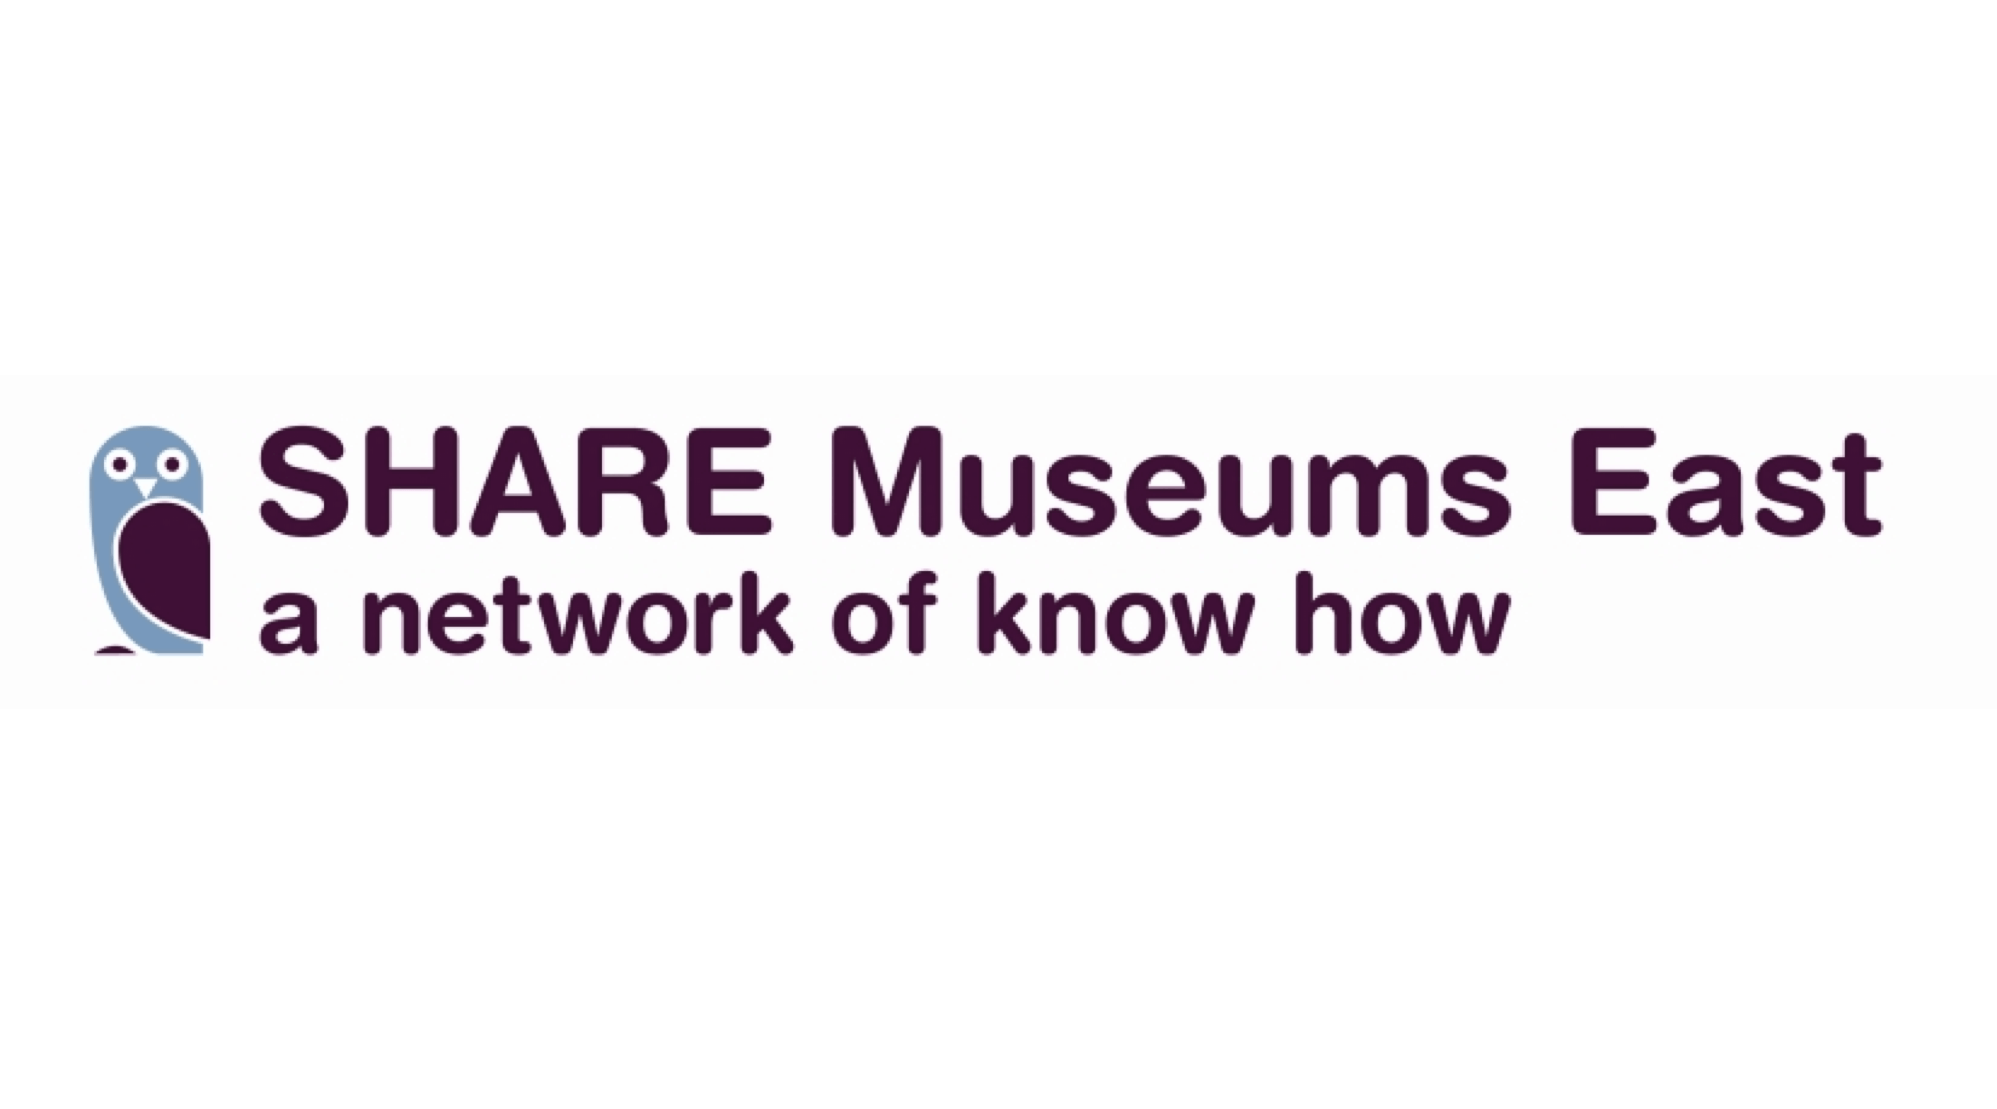 SHARE Museums East